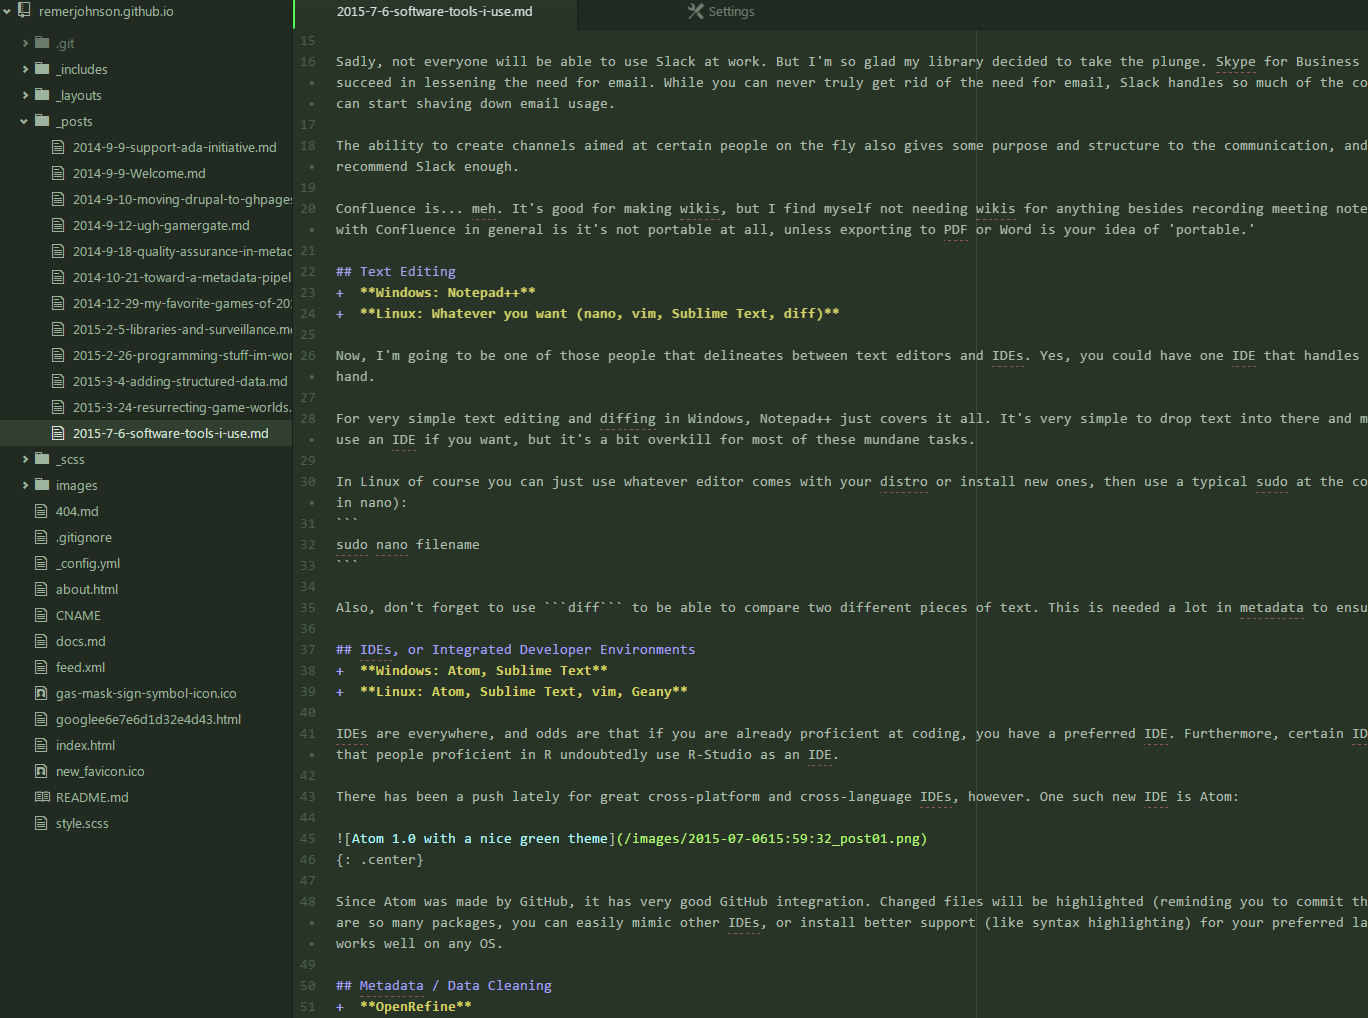 Atom 1.0 with a nice green theme